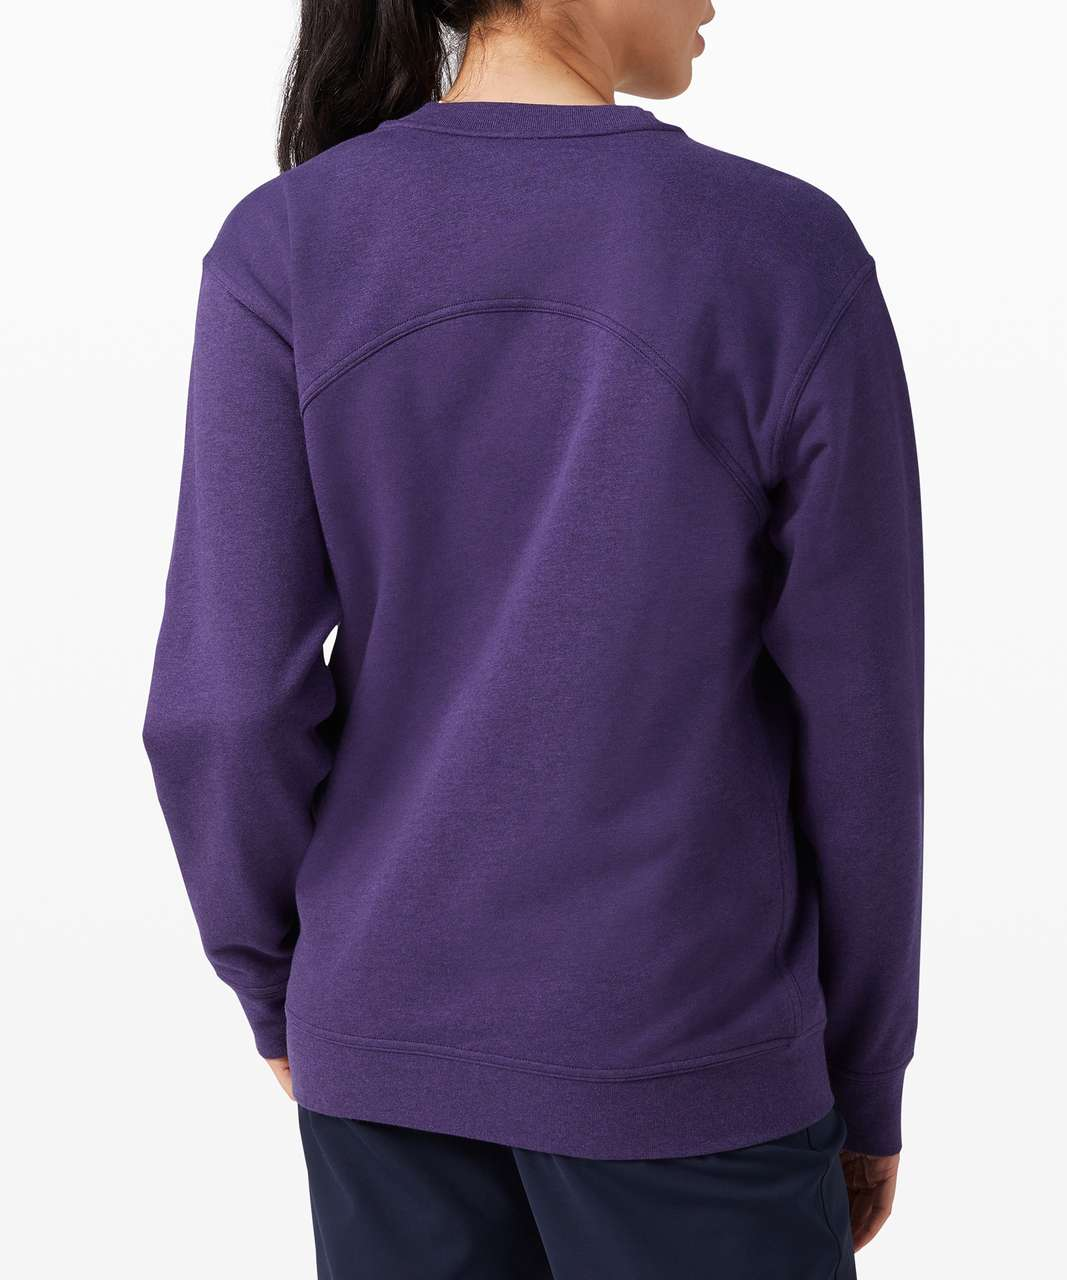 Lululemon All Yours Crew *Terry - Heathered Midnight Orchid